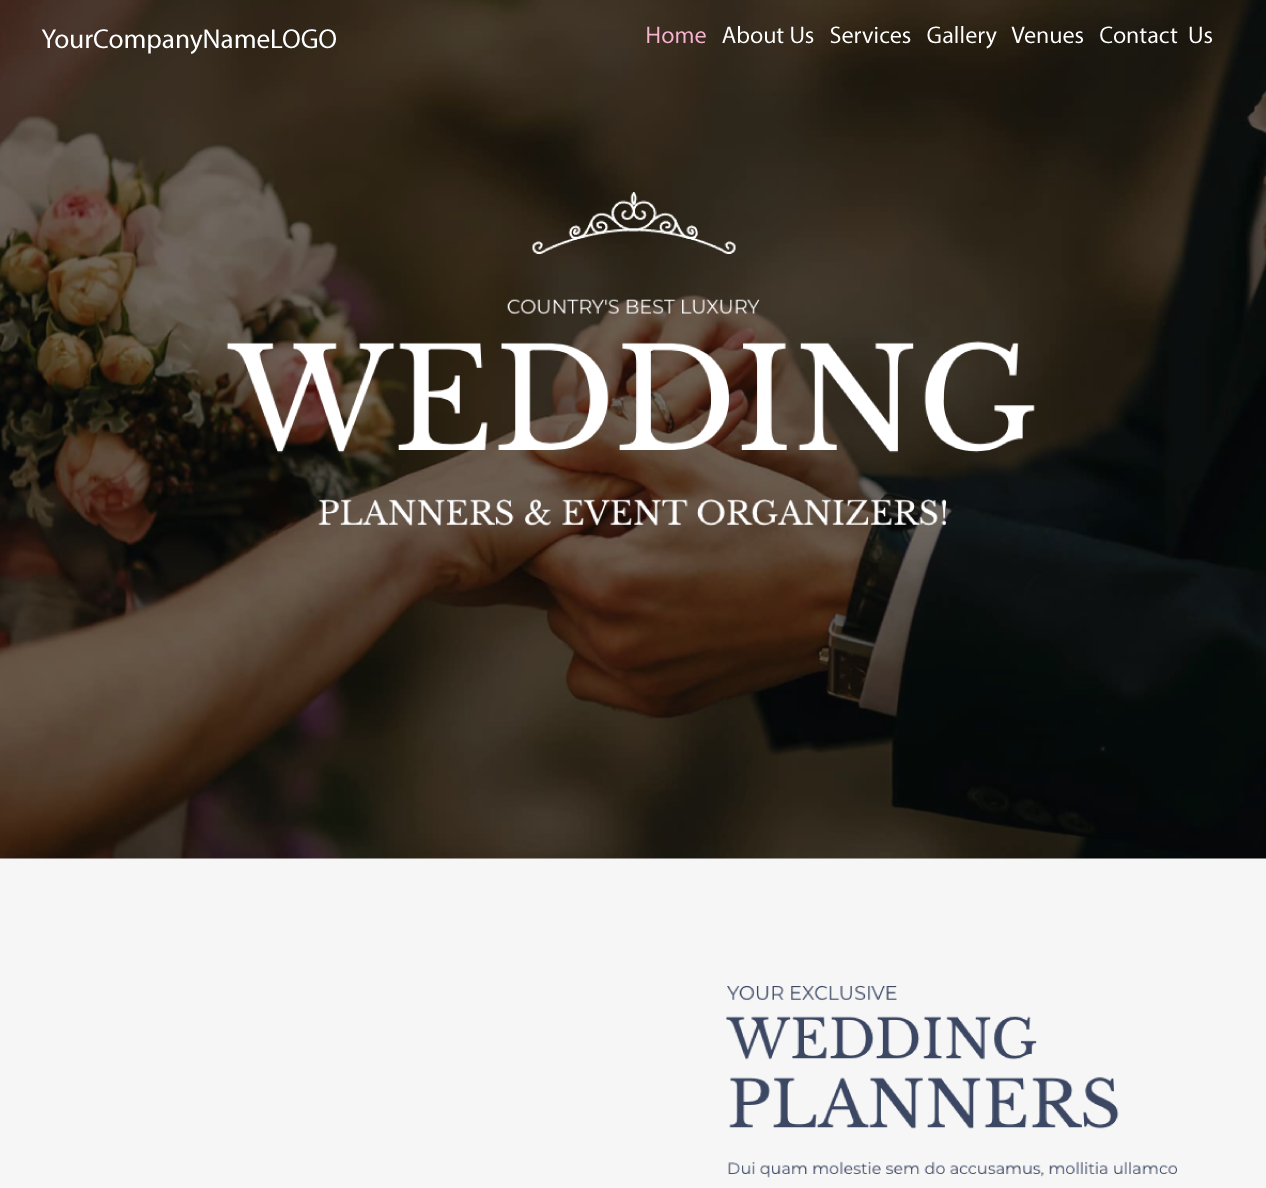 An Image of a Wedding Planing new website design